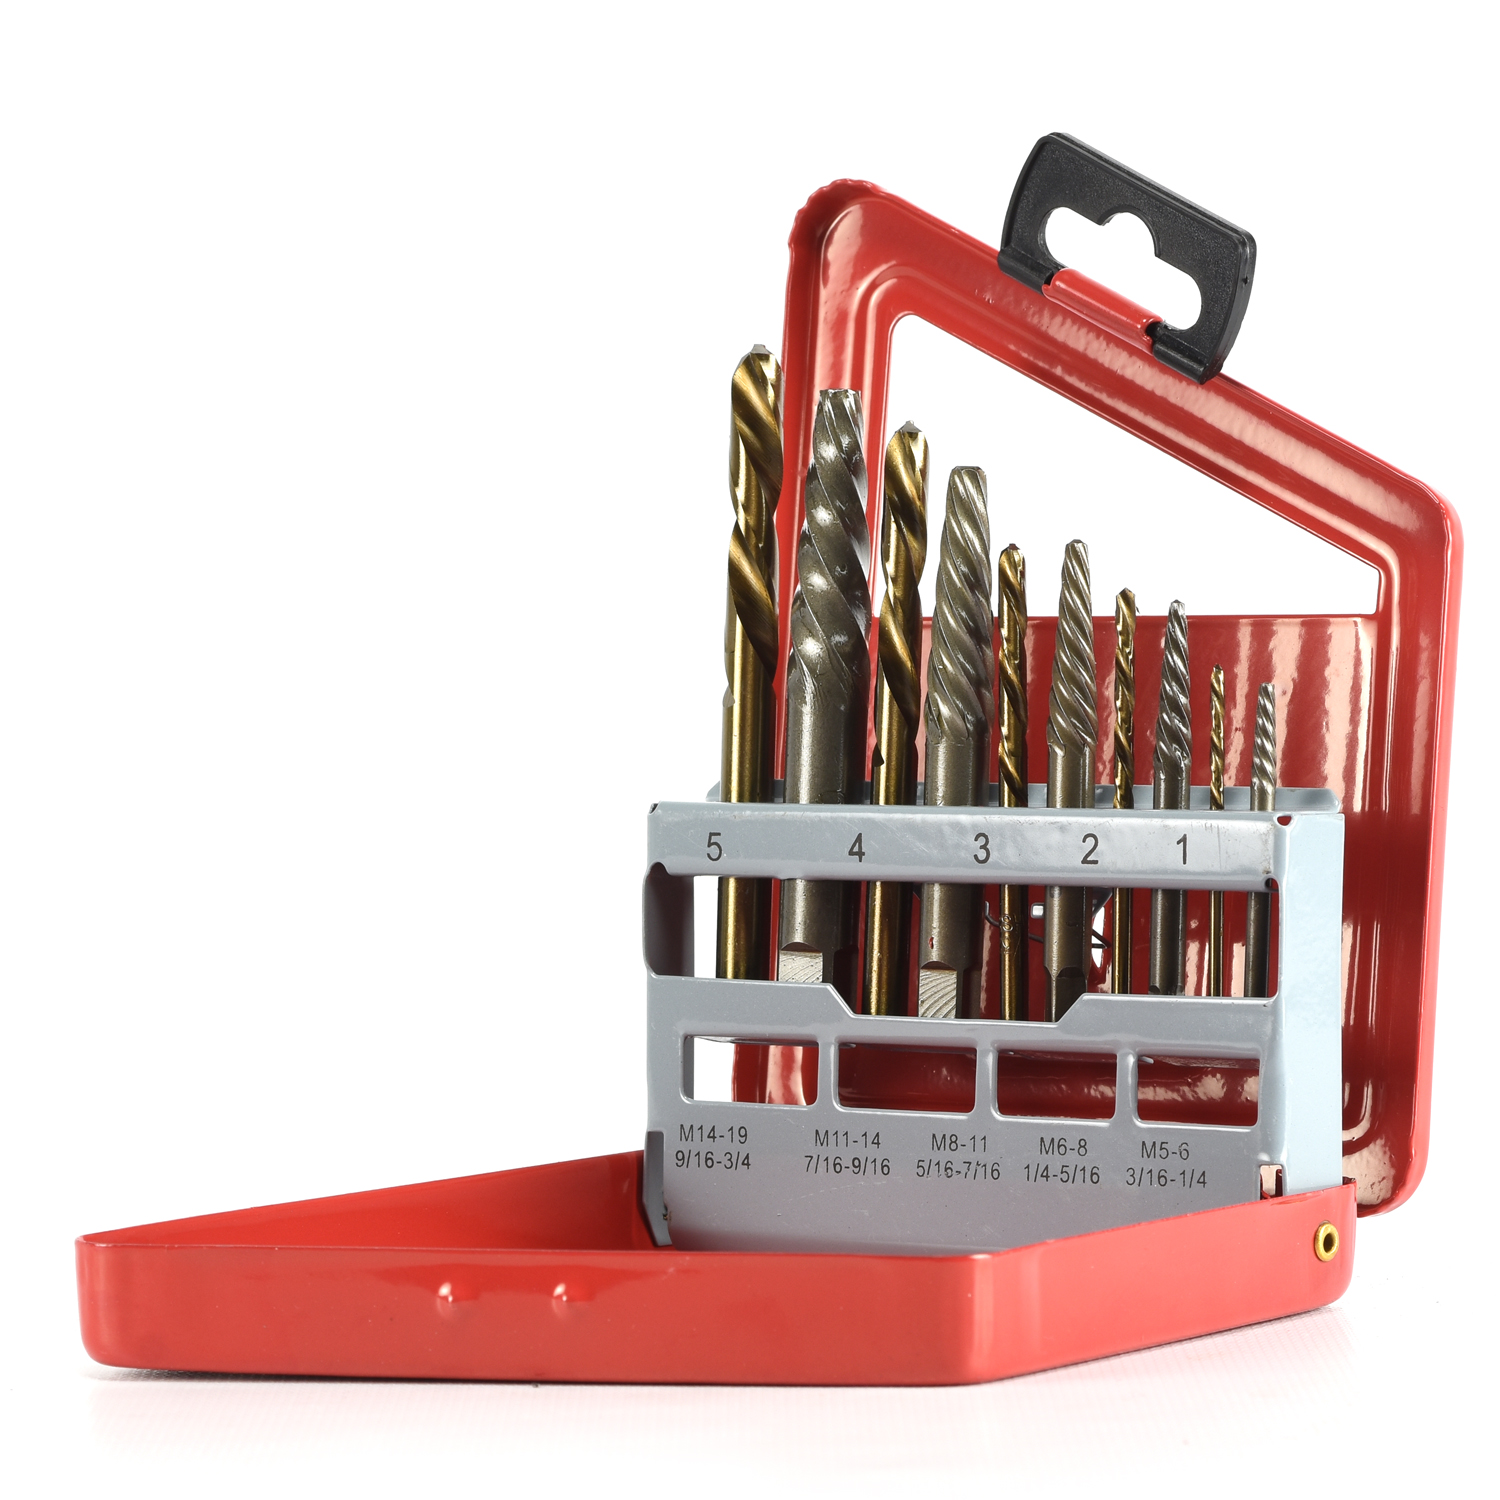 Neiko 01925A 10 Piece Screw Extractor and Left Hand Drill Bit Set